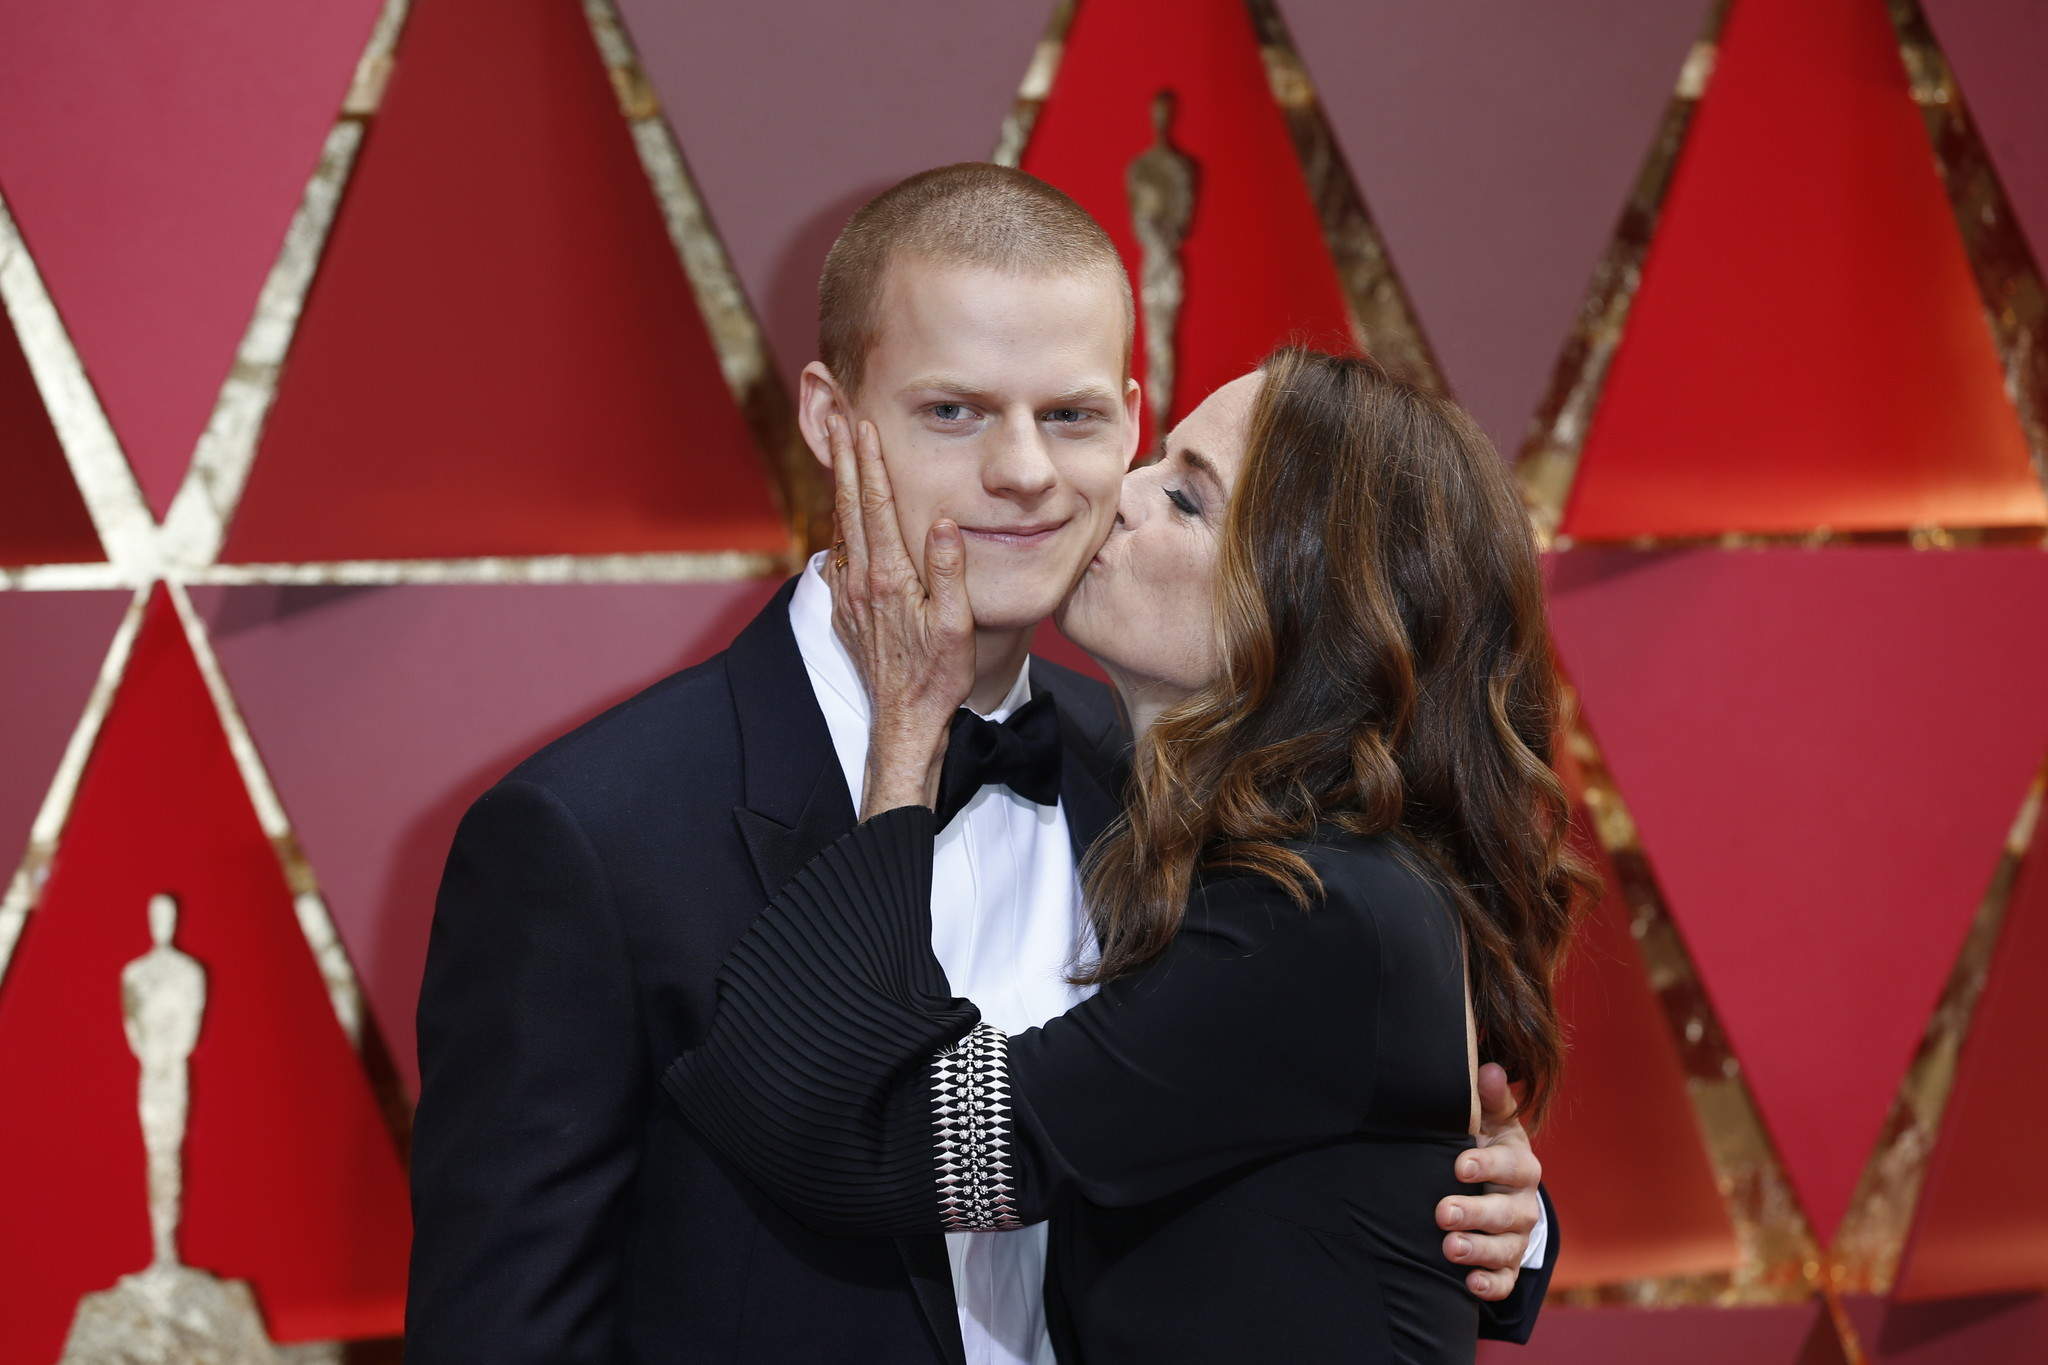 lucas hedges oscarlucas hedges кинопоиск, lucas hedges vogue, lucas hedges tumblr, lucas hedges photoshoot, lucas hedges oscar, lucas hedges nu, lucas hedges inst, lucas hedges films, lucas hedges zimbio, lucas hedges gif, lucas hedges insta, lucas hedges social media, lucas hedges instagram, lucas hedges wikipedia, lucas hedges twitter, lucas hedges height, lucas hedges interview, lucas hedges age, lucas hedges facebook